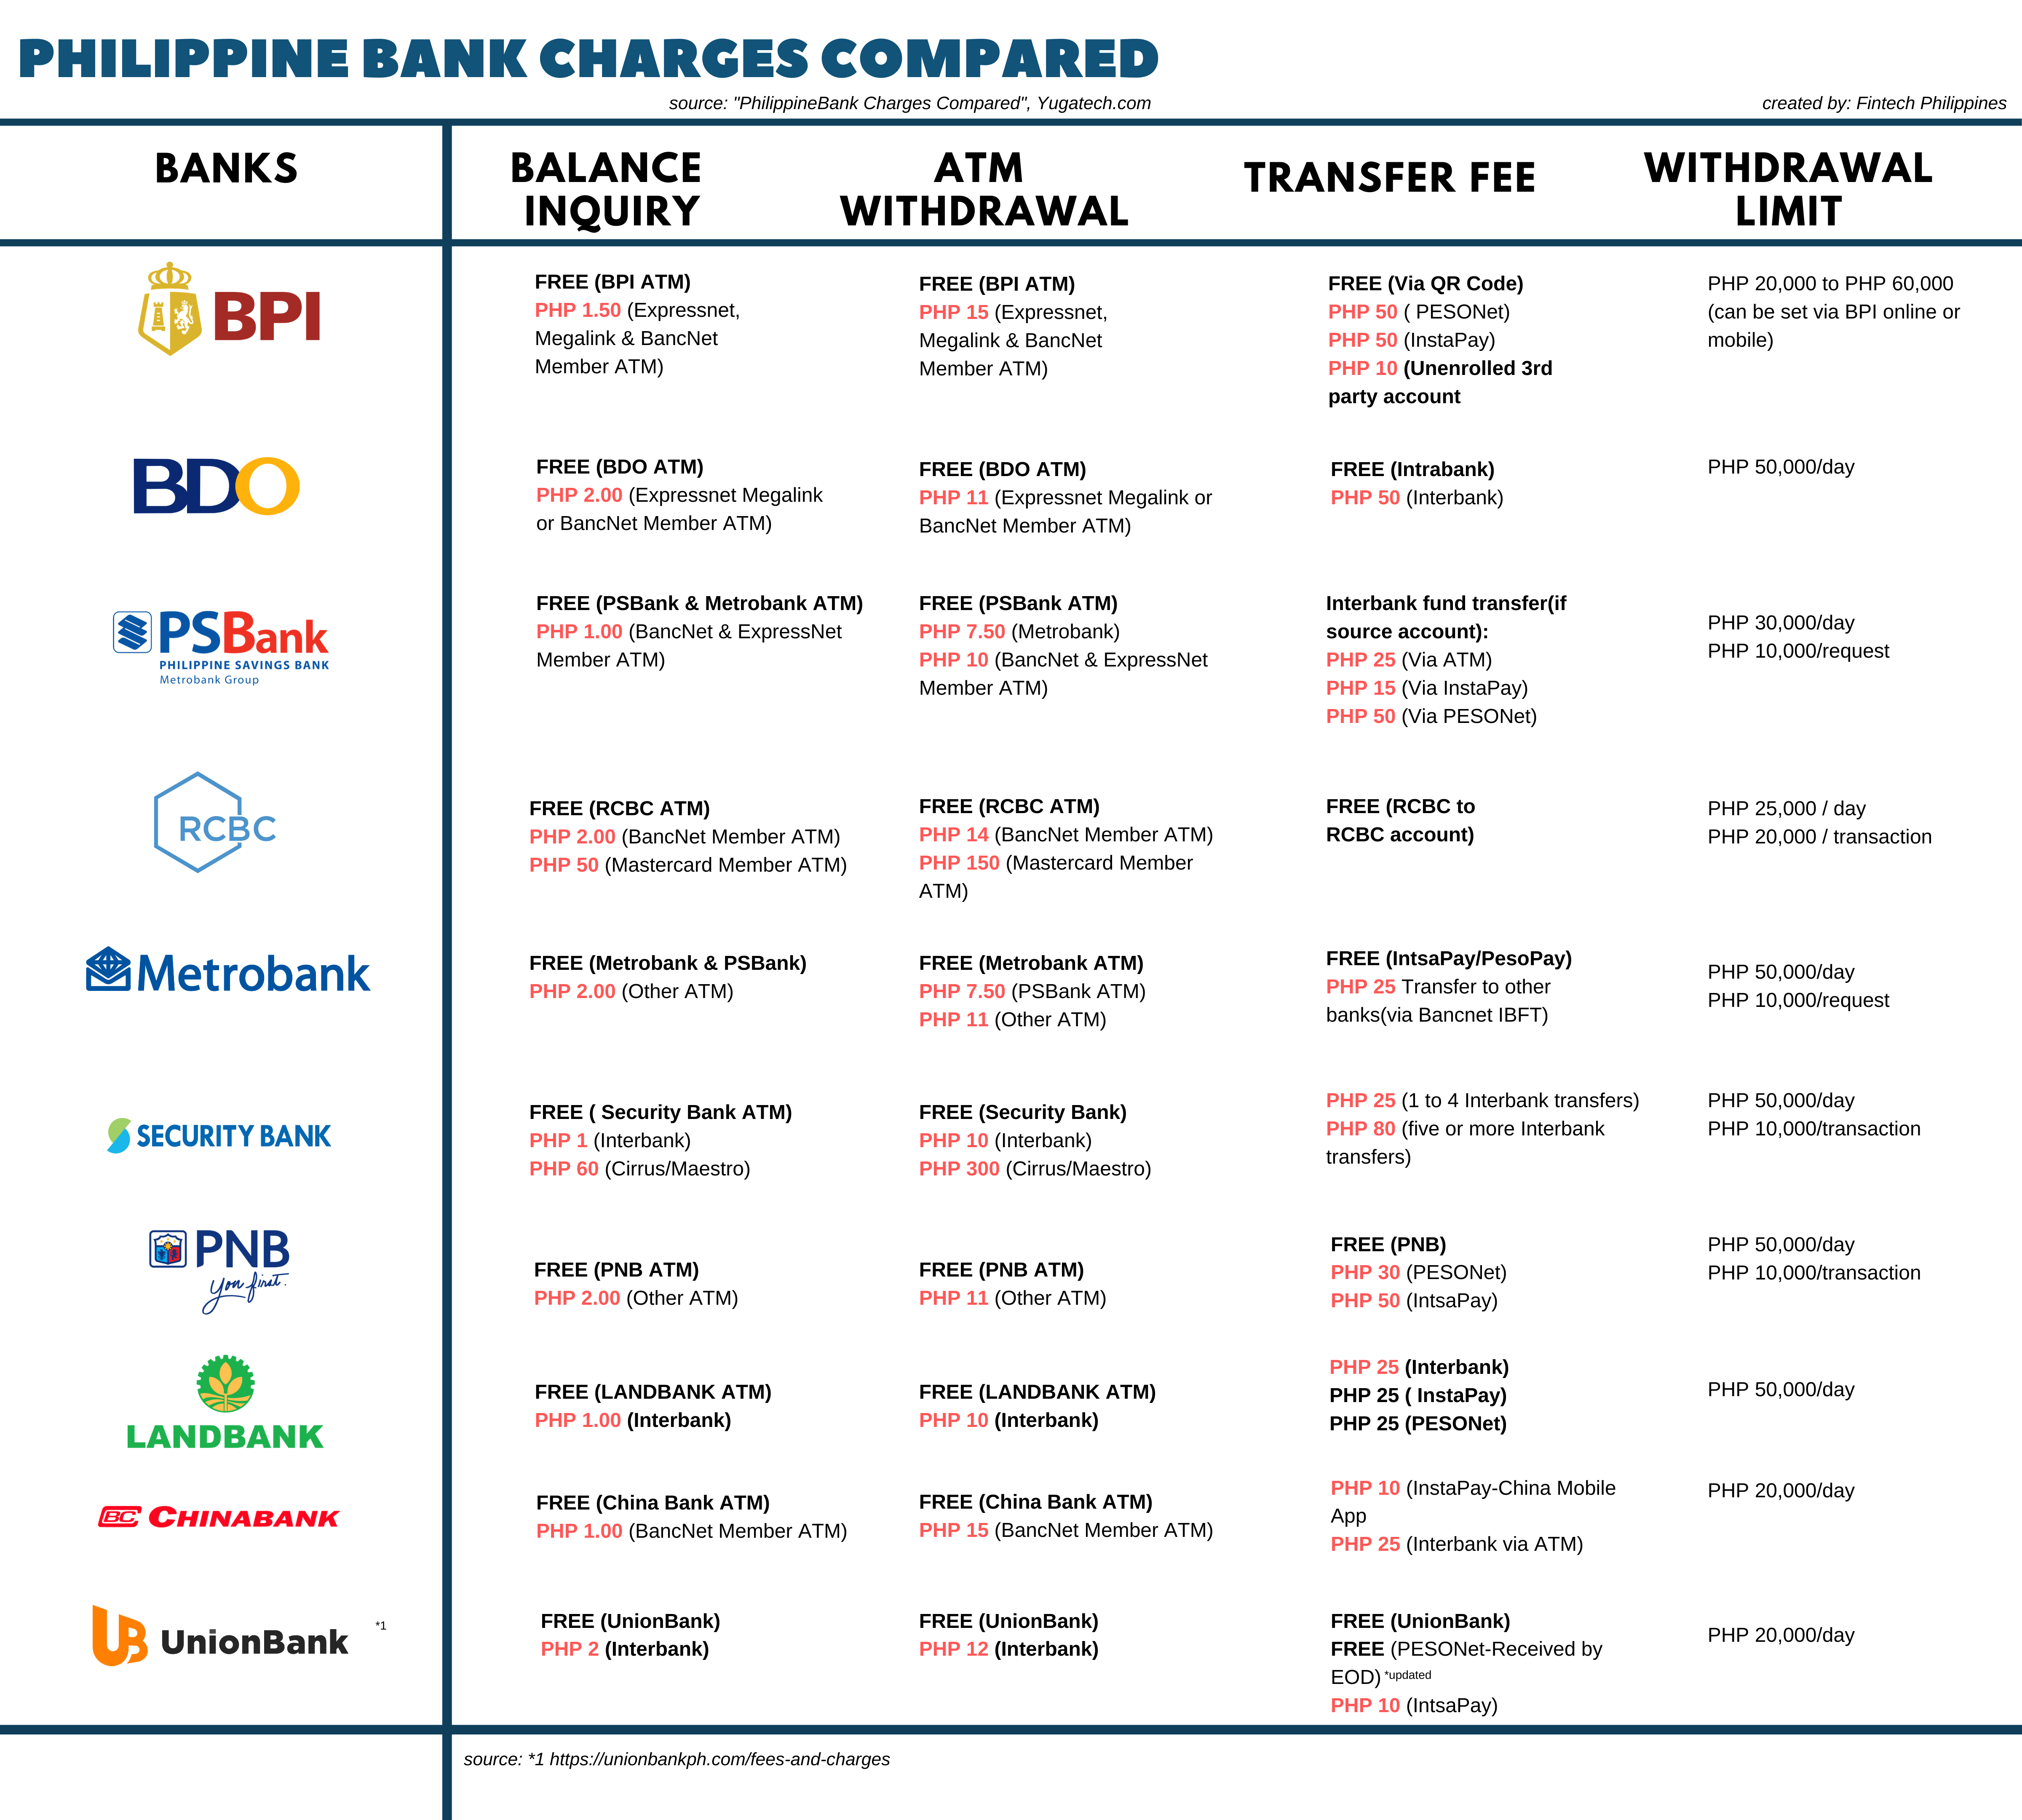 Philippine Bank Charges Compared